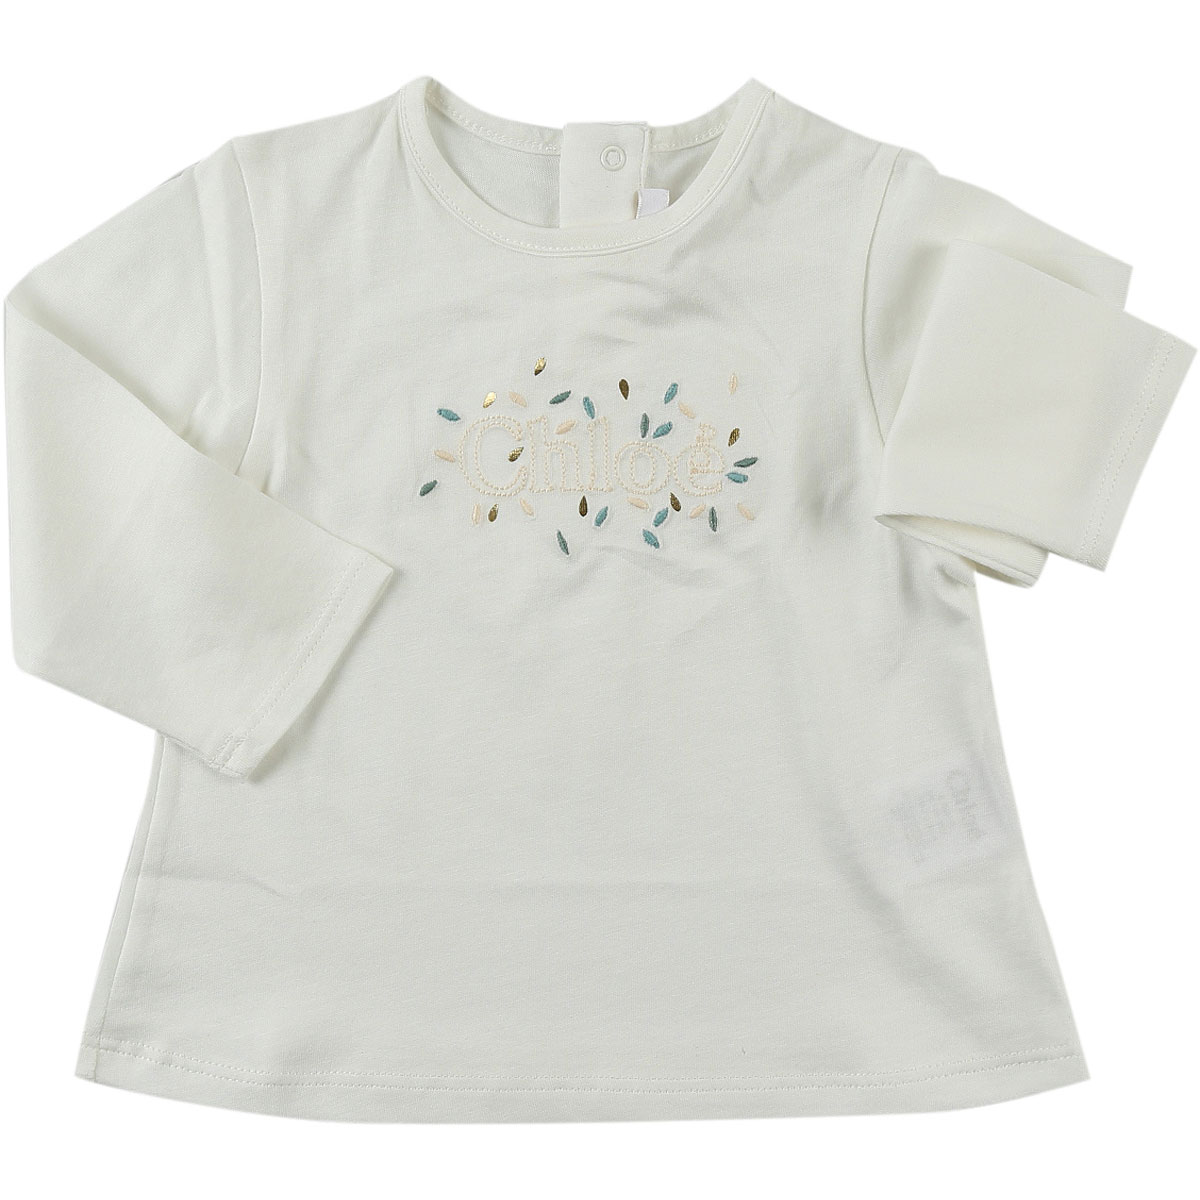 Image of Chloe Baby T-Shirt for Girls, White, Cotton, 2017, 12M 18M 2Y 3Y 6M 9M